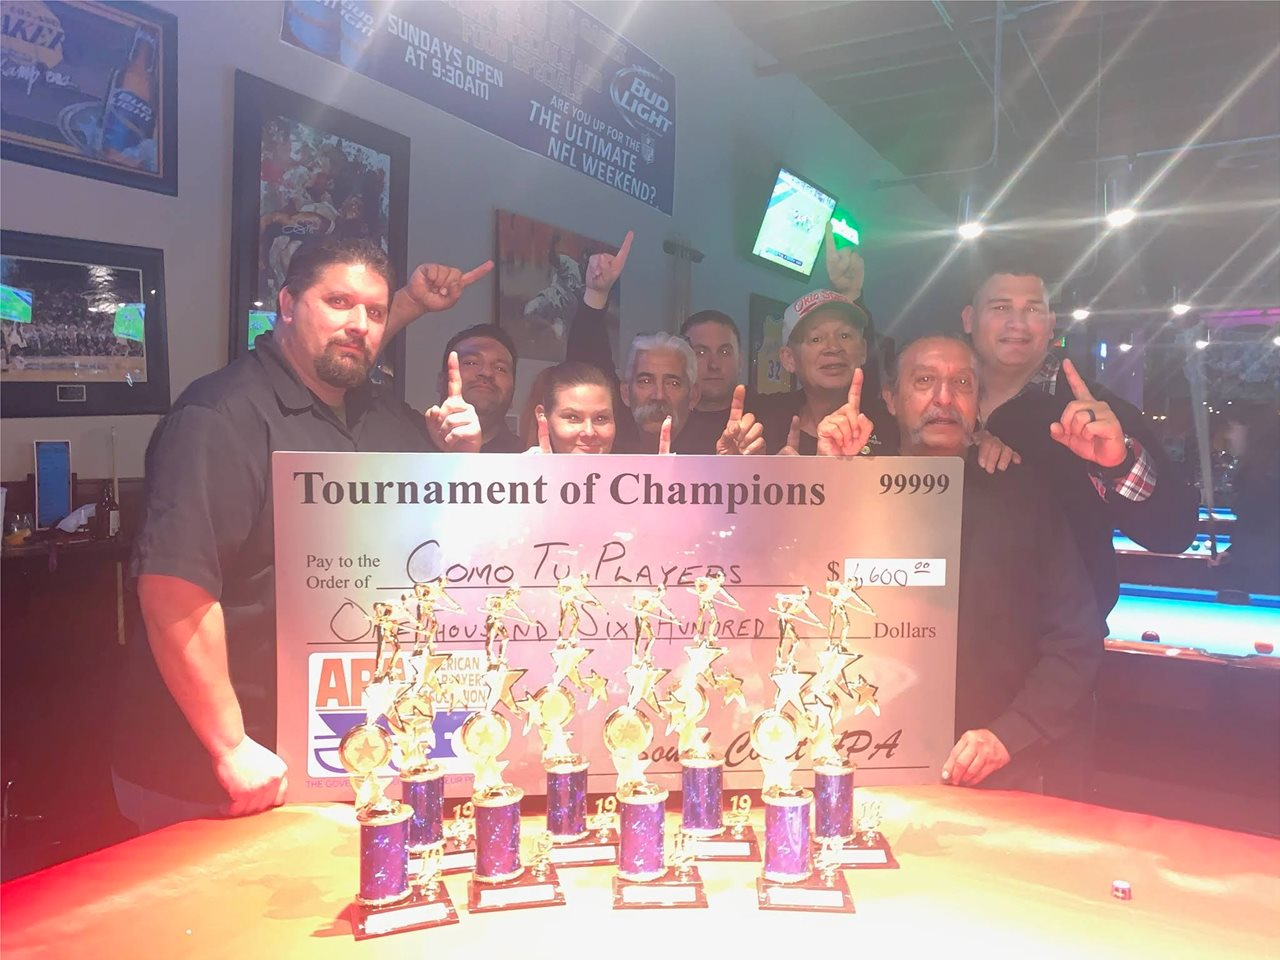 With my 9ball teammates. We practice pool even though places are closed. Photo in January 2020 when